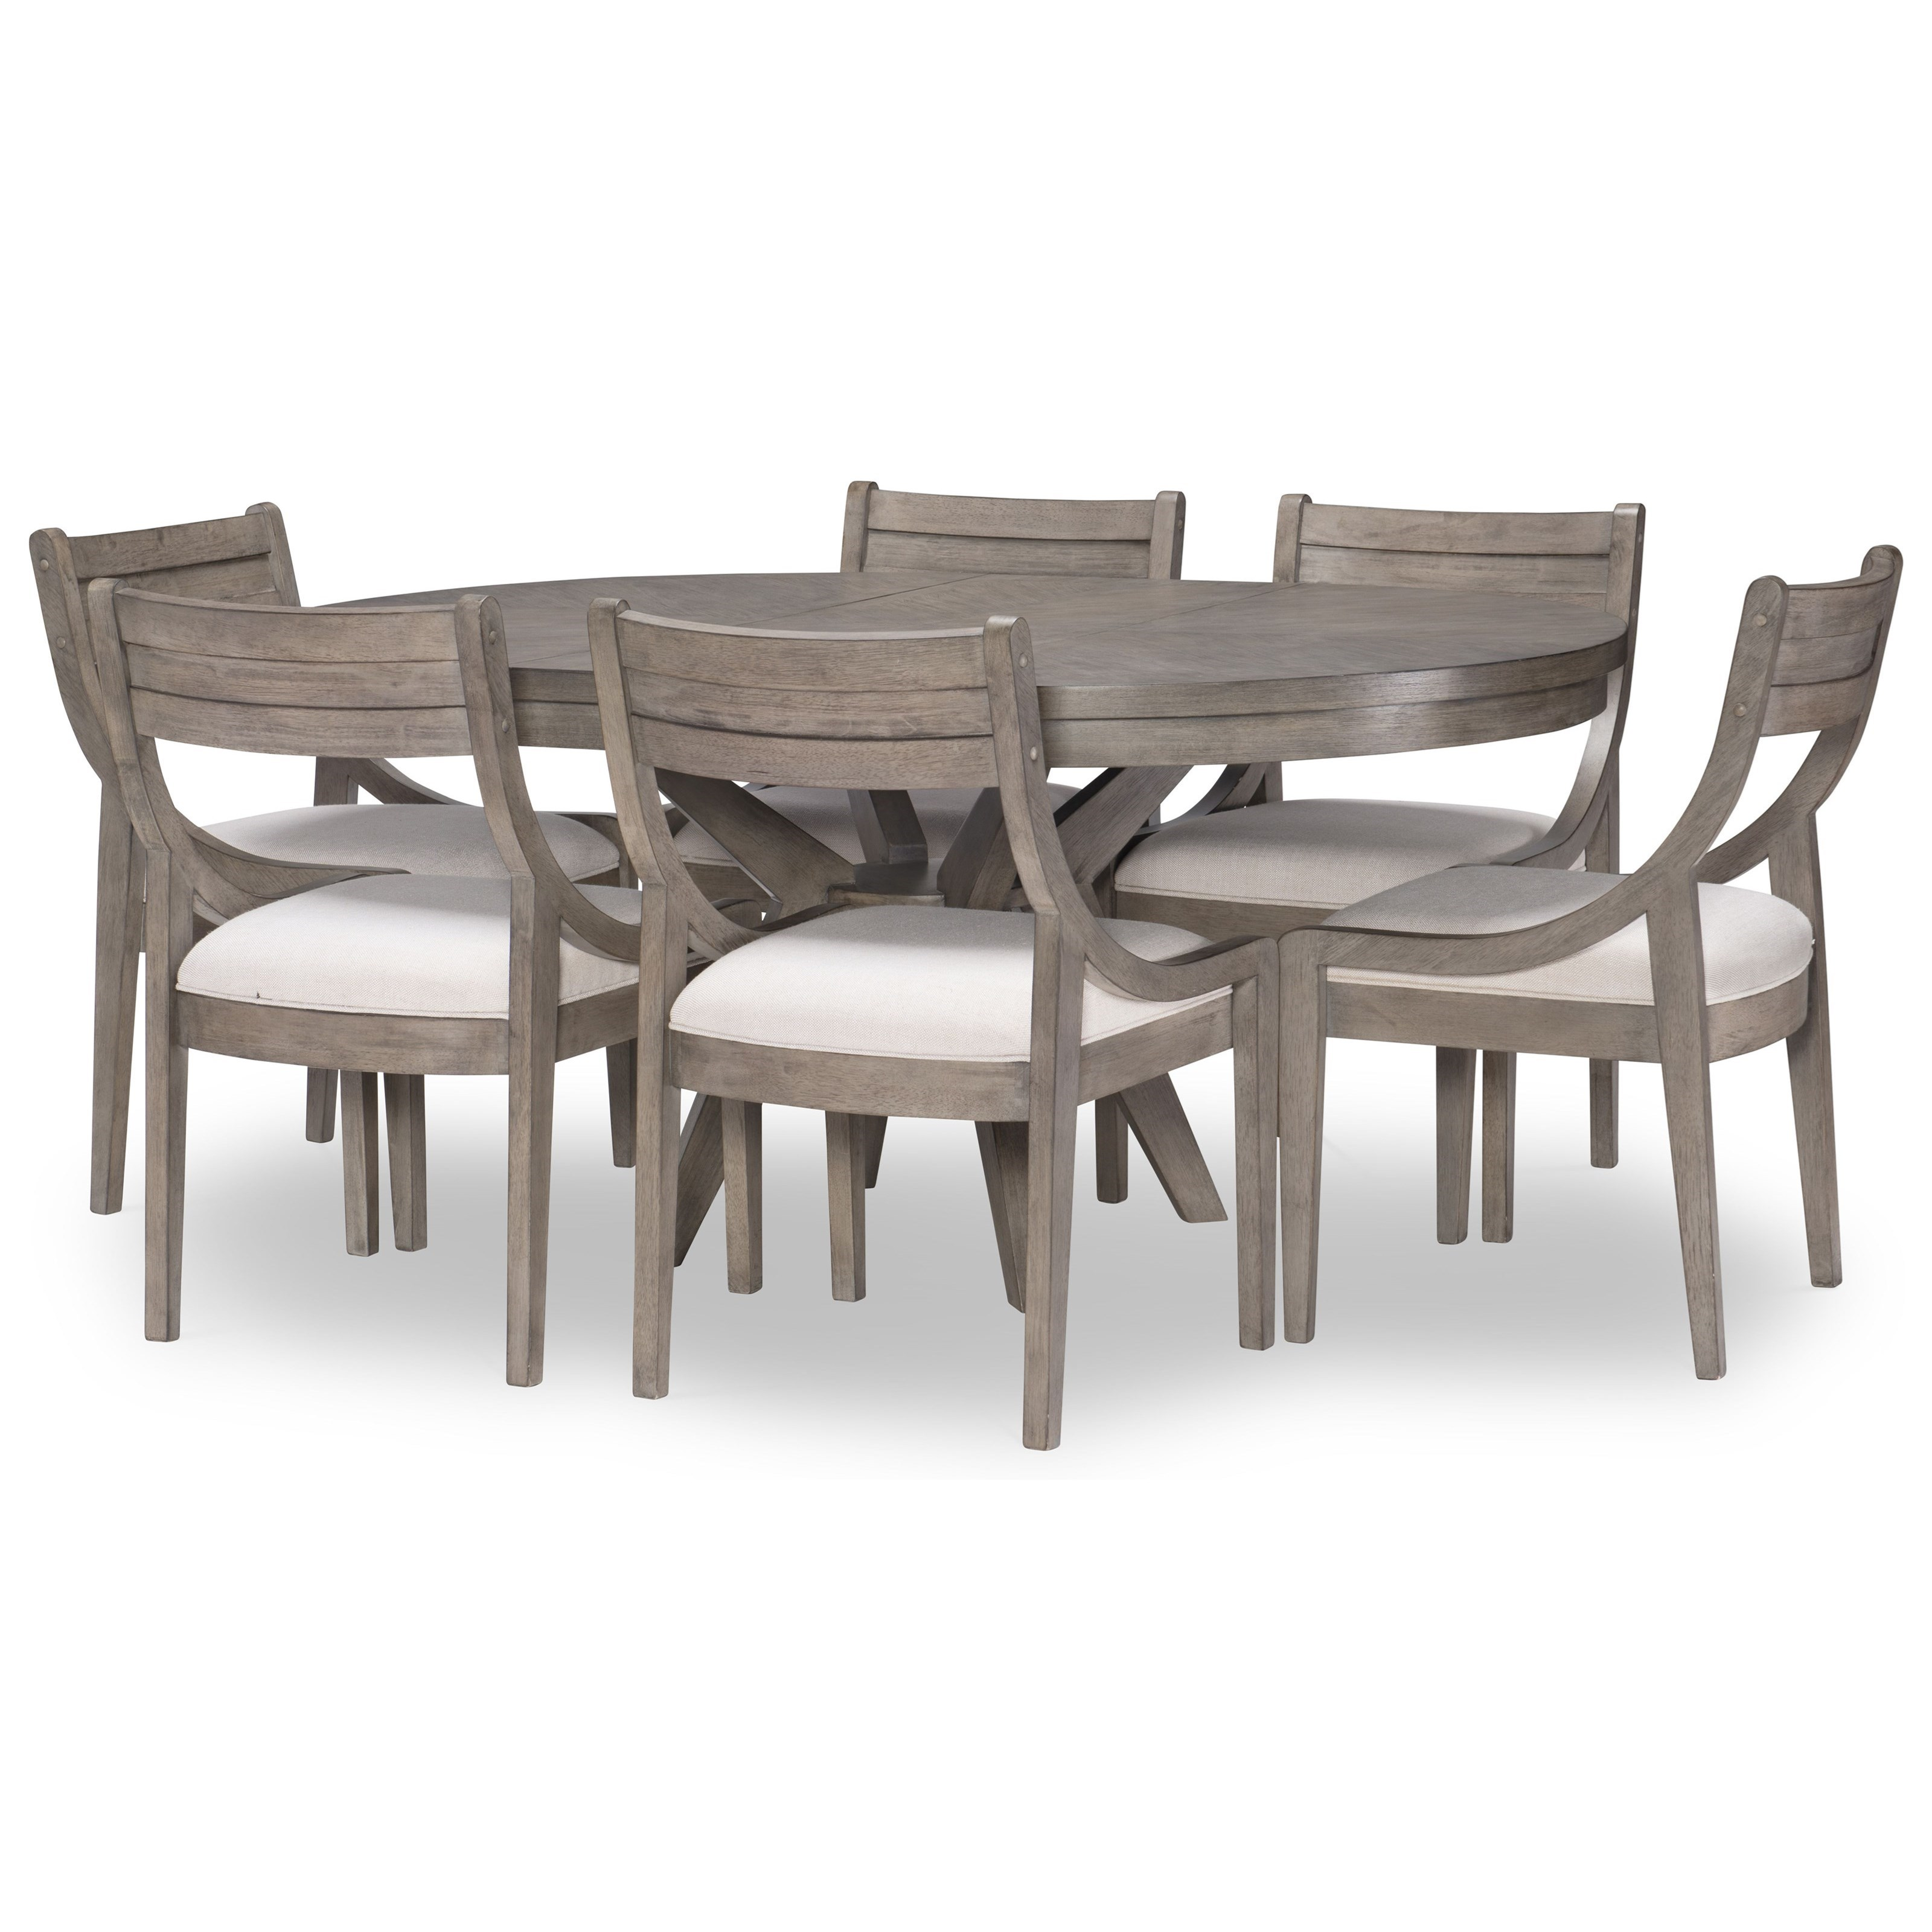 Greystone 7-Piece Table and Chair Set by Legacy Classic at Stoney Creek Furniture